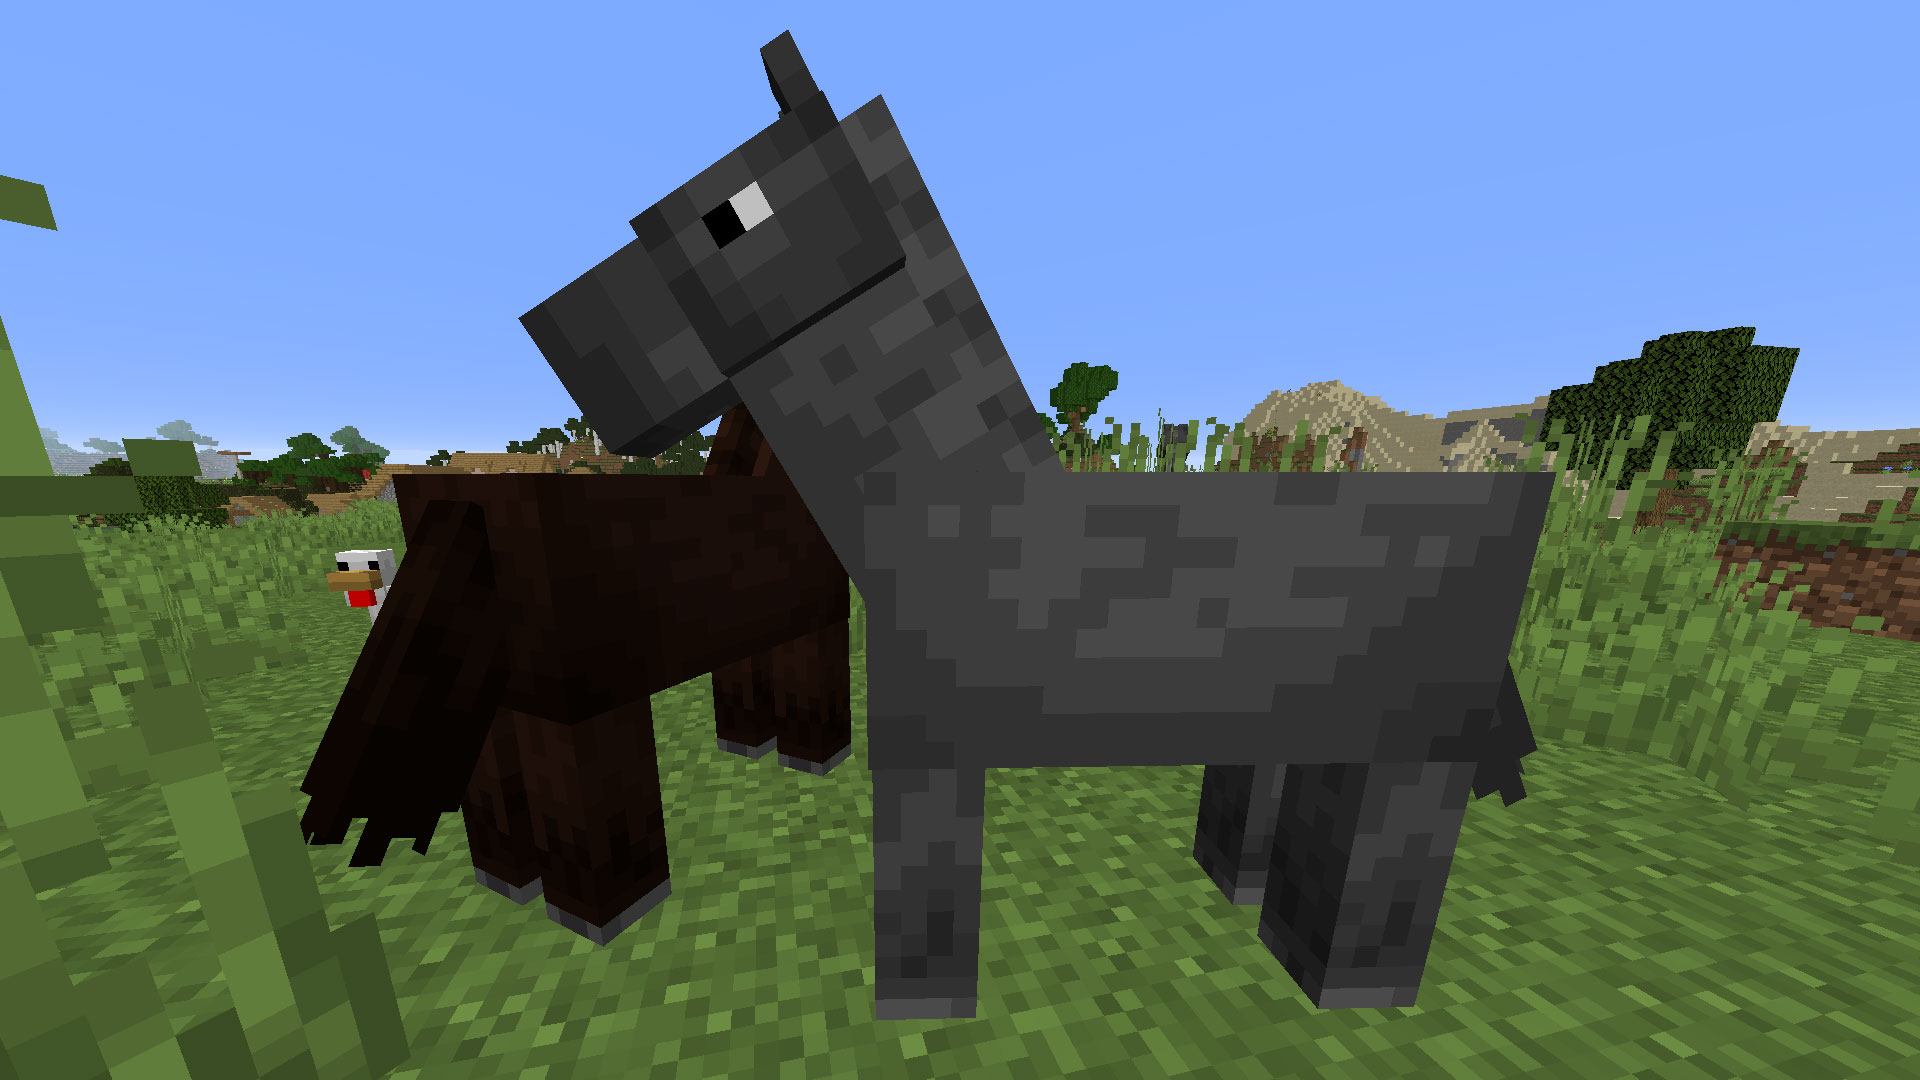 How To Tame A Horse In Minecraft Riding Horses In Minecraft Pro Game Guides